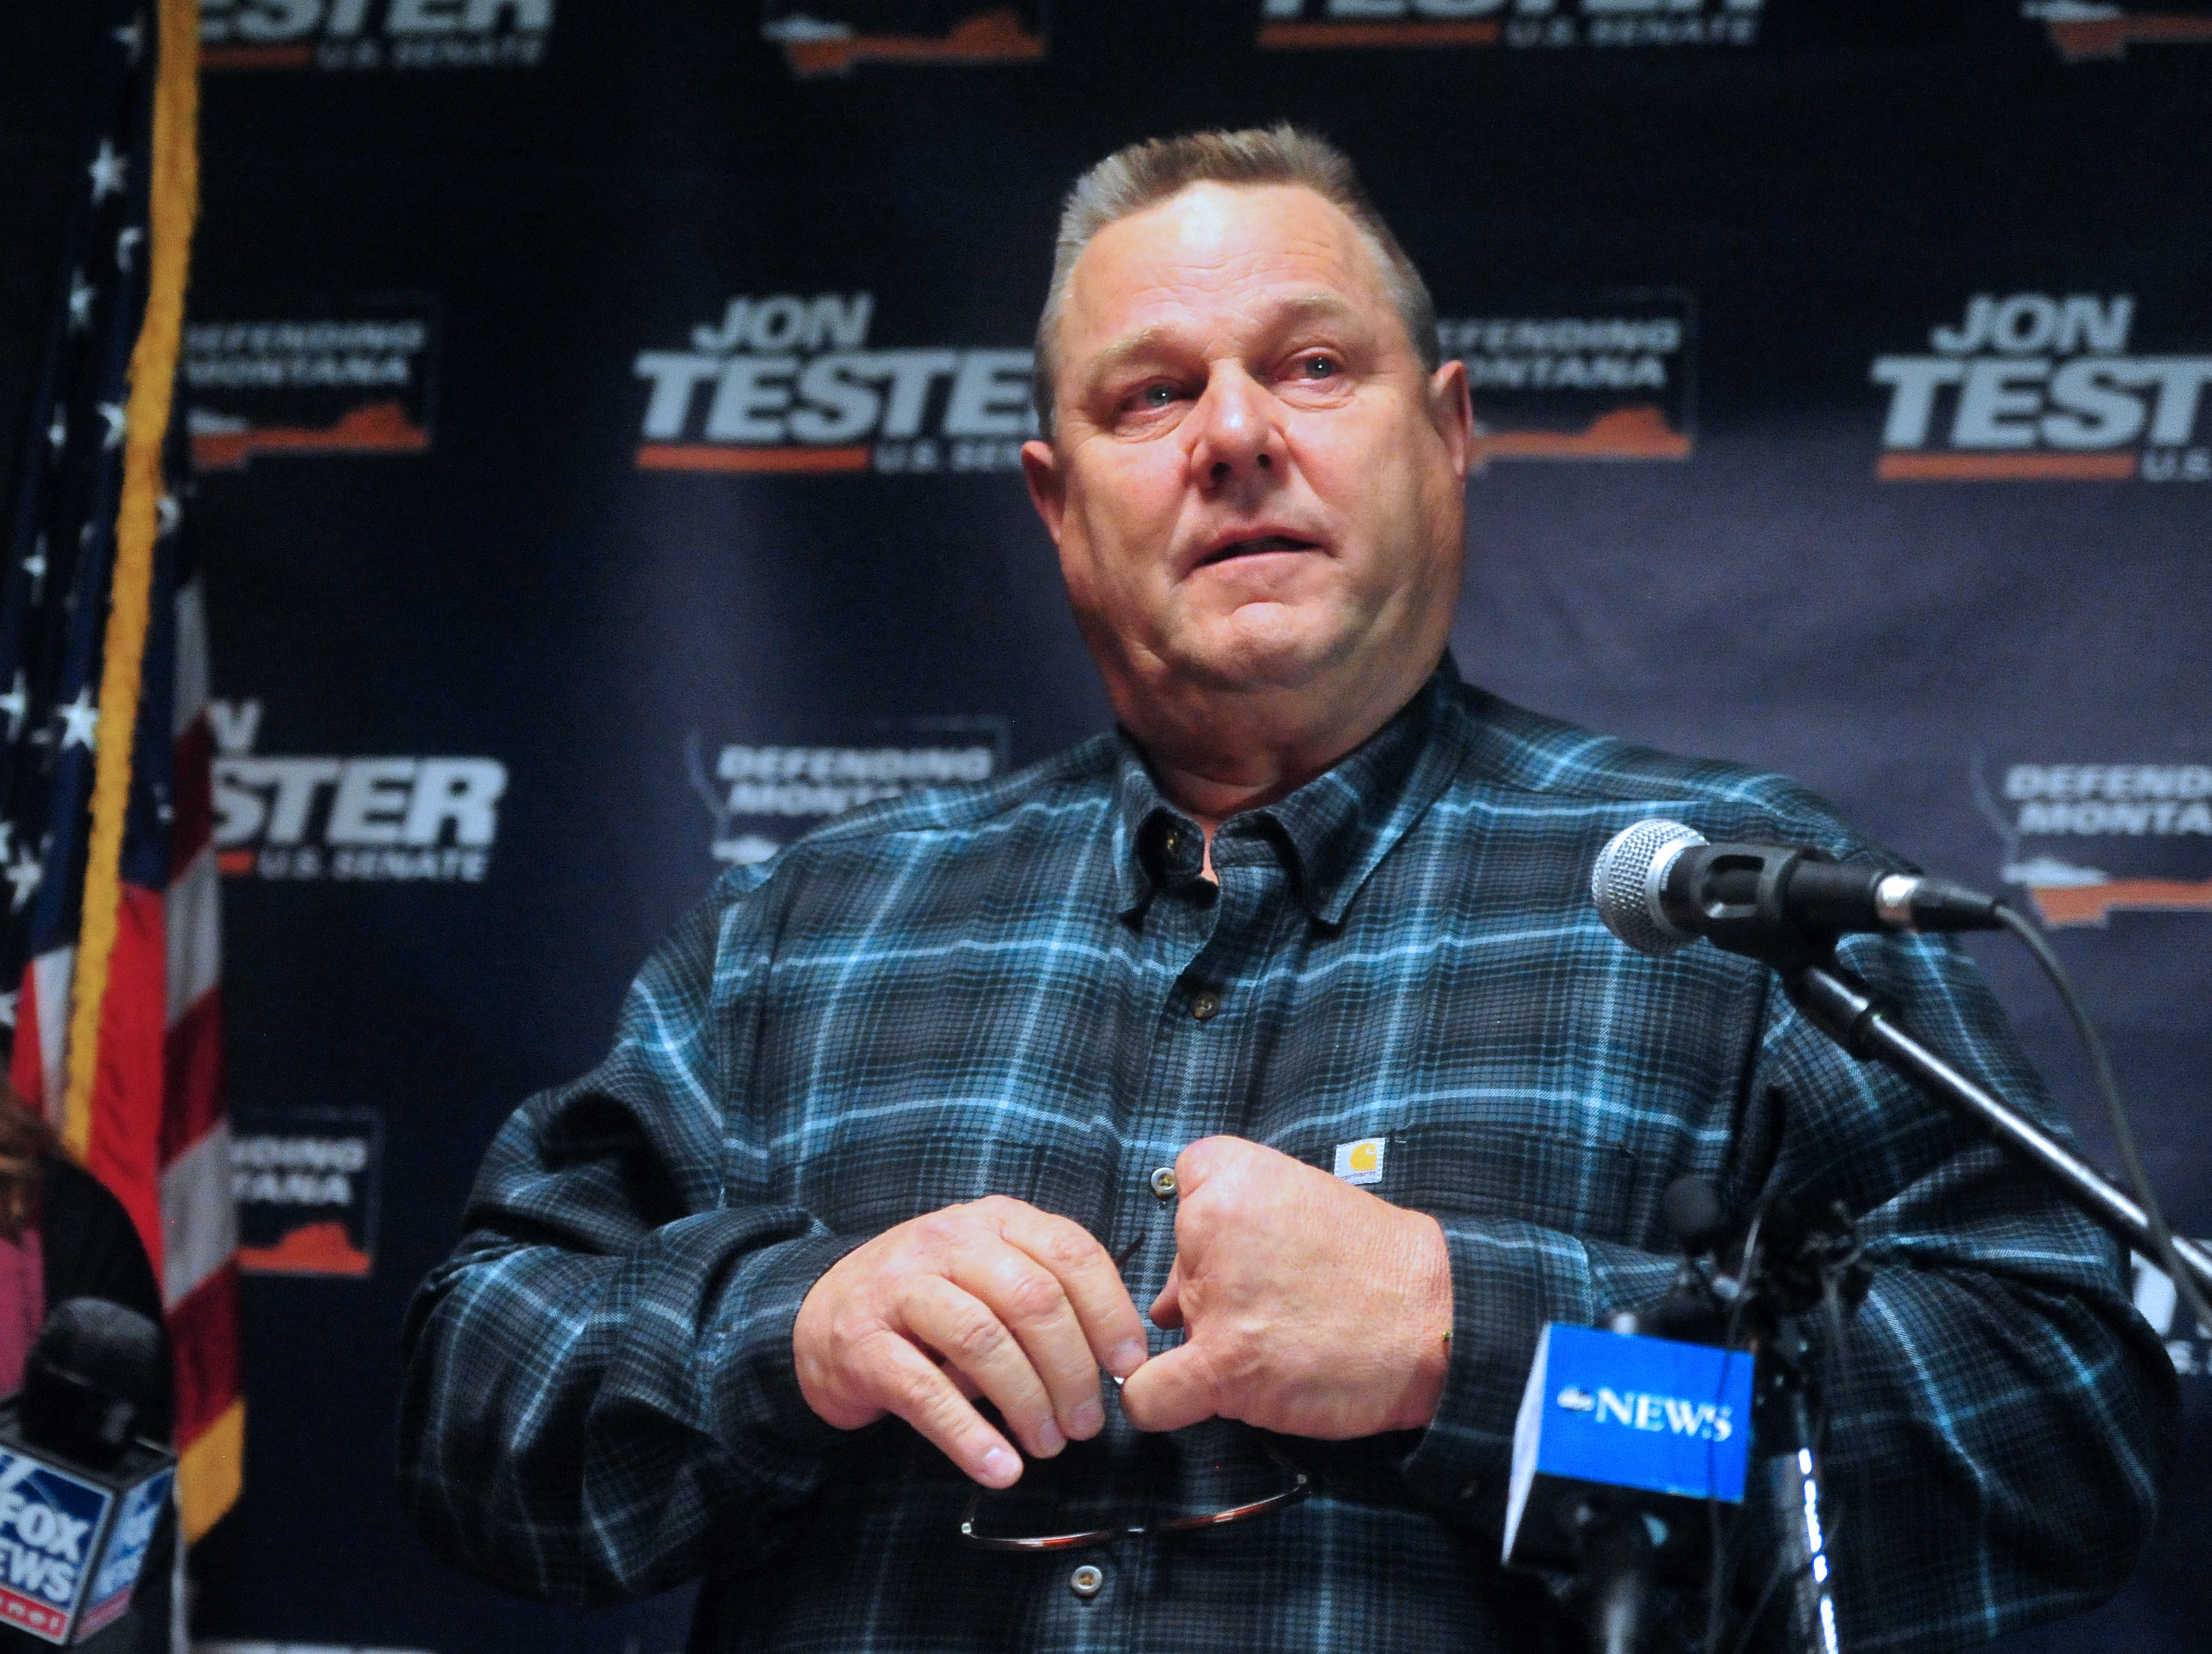 Senator Jon Tester talks about his work with military veterans during his victory rally at the Holiday Inn in Great Falls on Wednesday morning after the AP called the senate race in his favor.